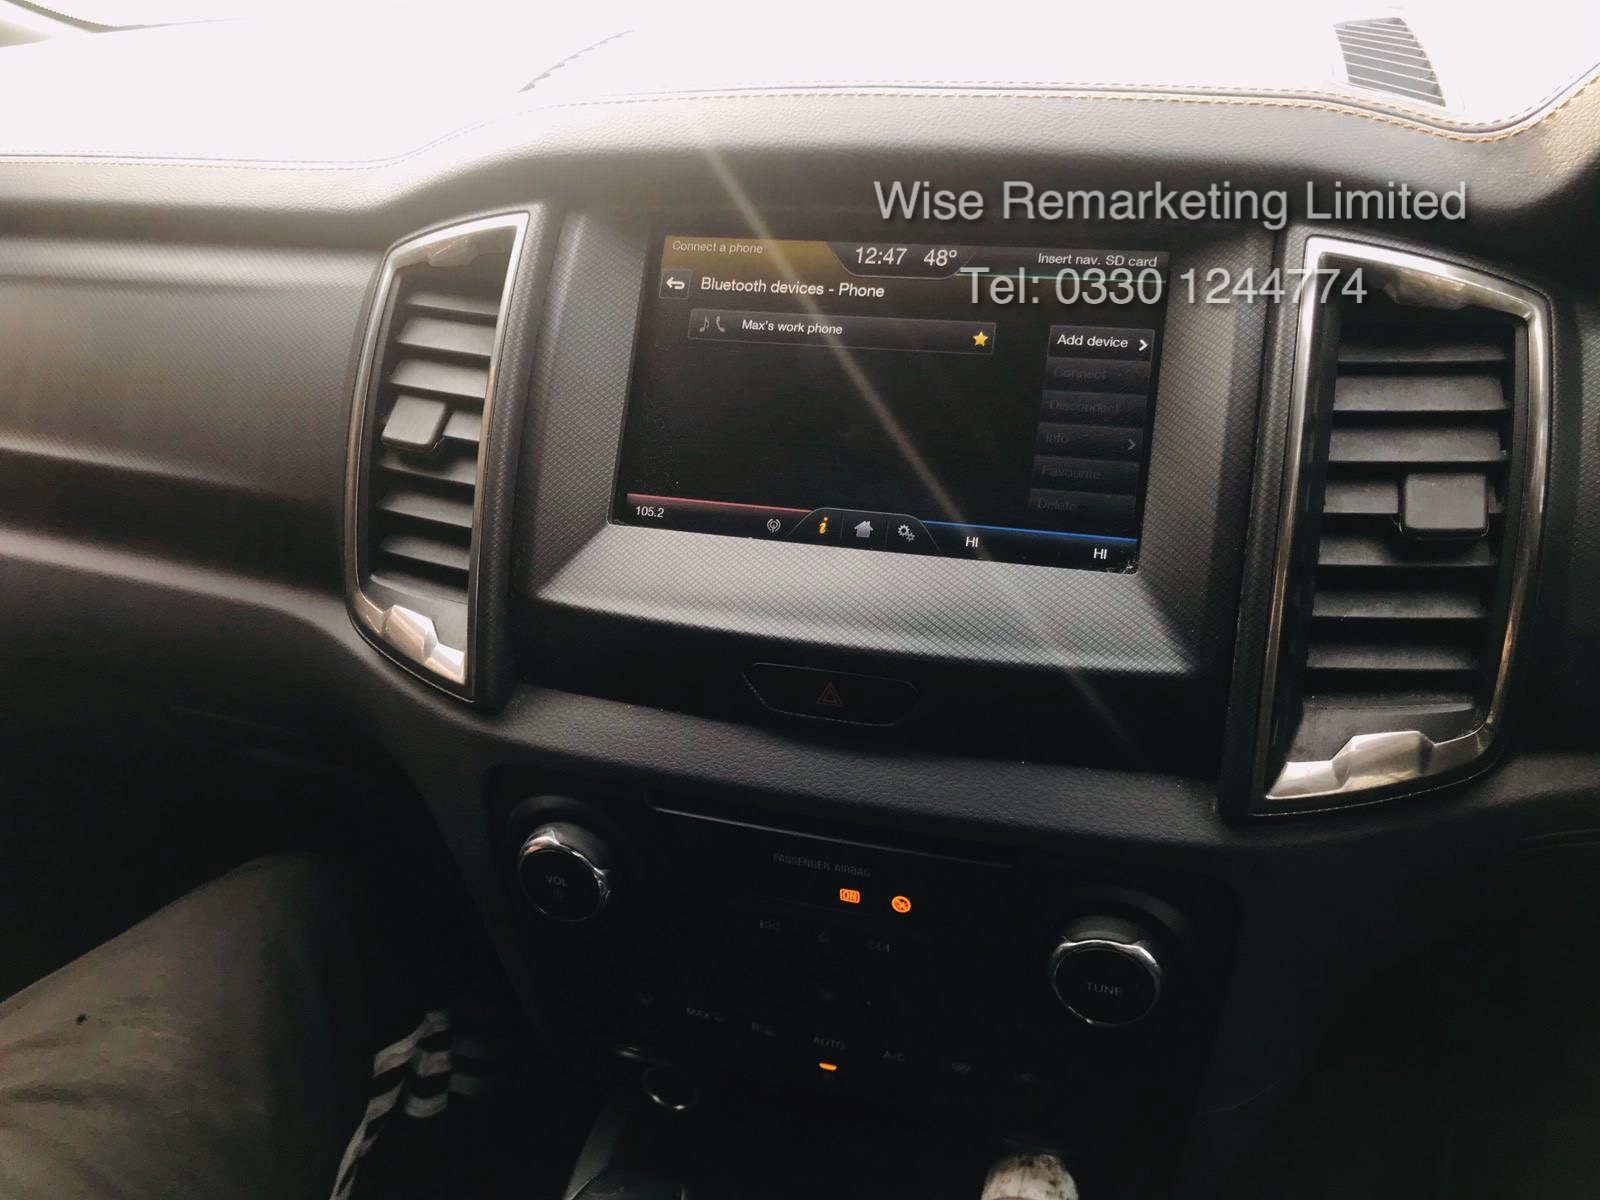 Ford Ranger 3.2 TDCI WILDTRAK - Auto - 2017 Model - 1 Former Keeper - 4x4 - TOP OF THE RANGE - Image 12 of 16